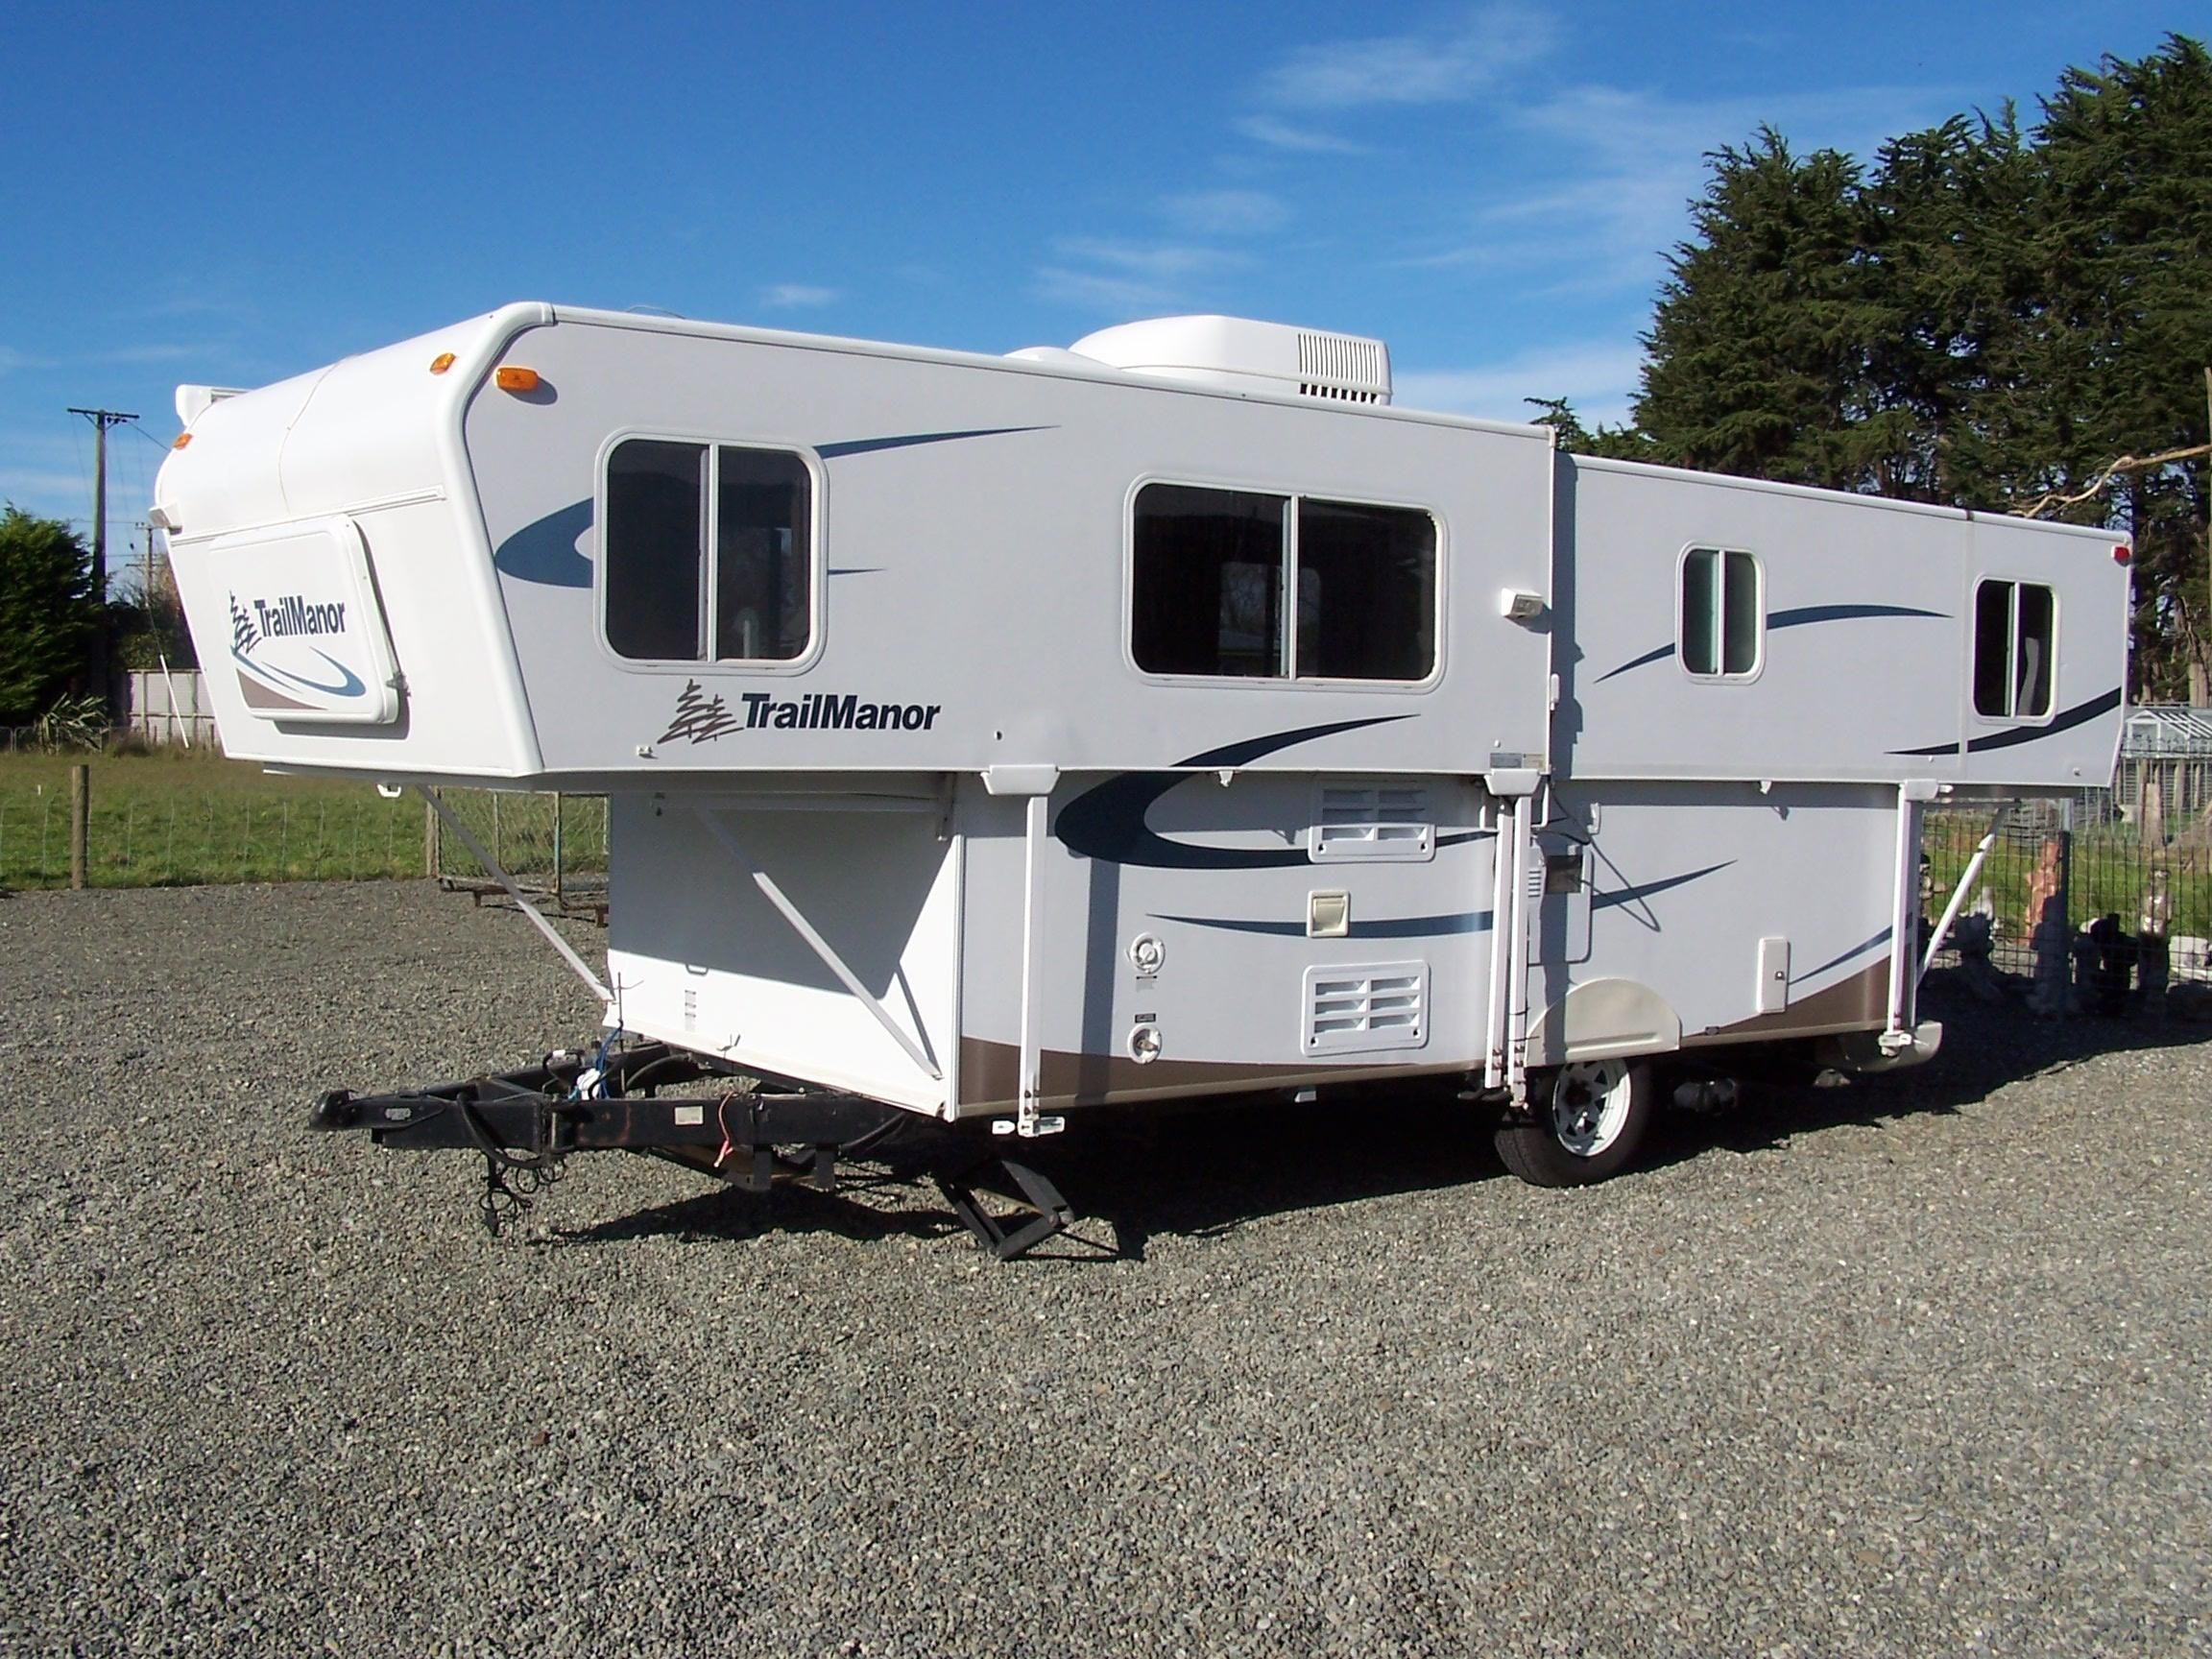 FOR SALE: 2007 Trail Manor Caravan model 2720